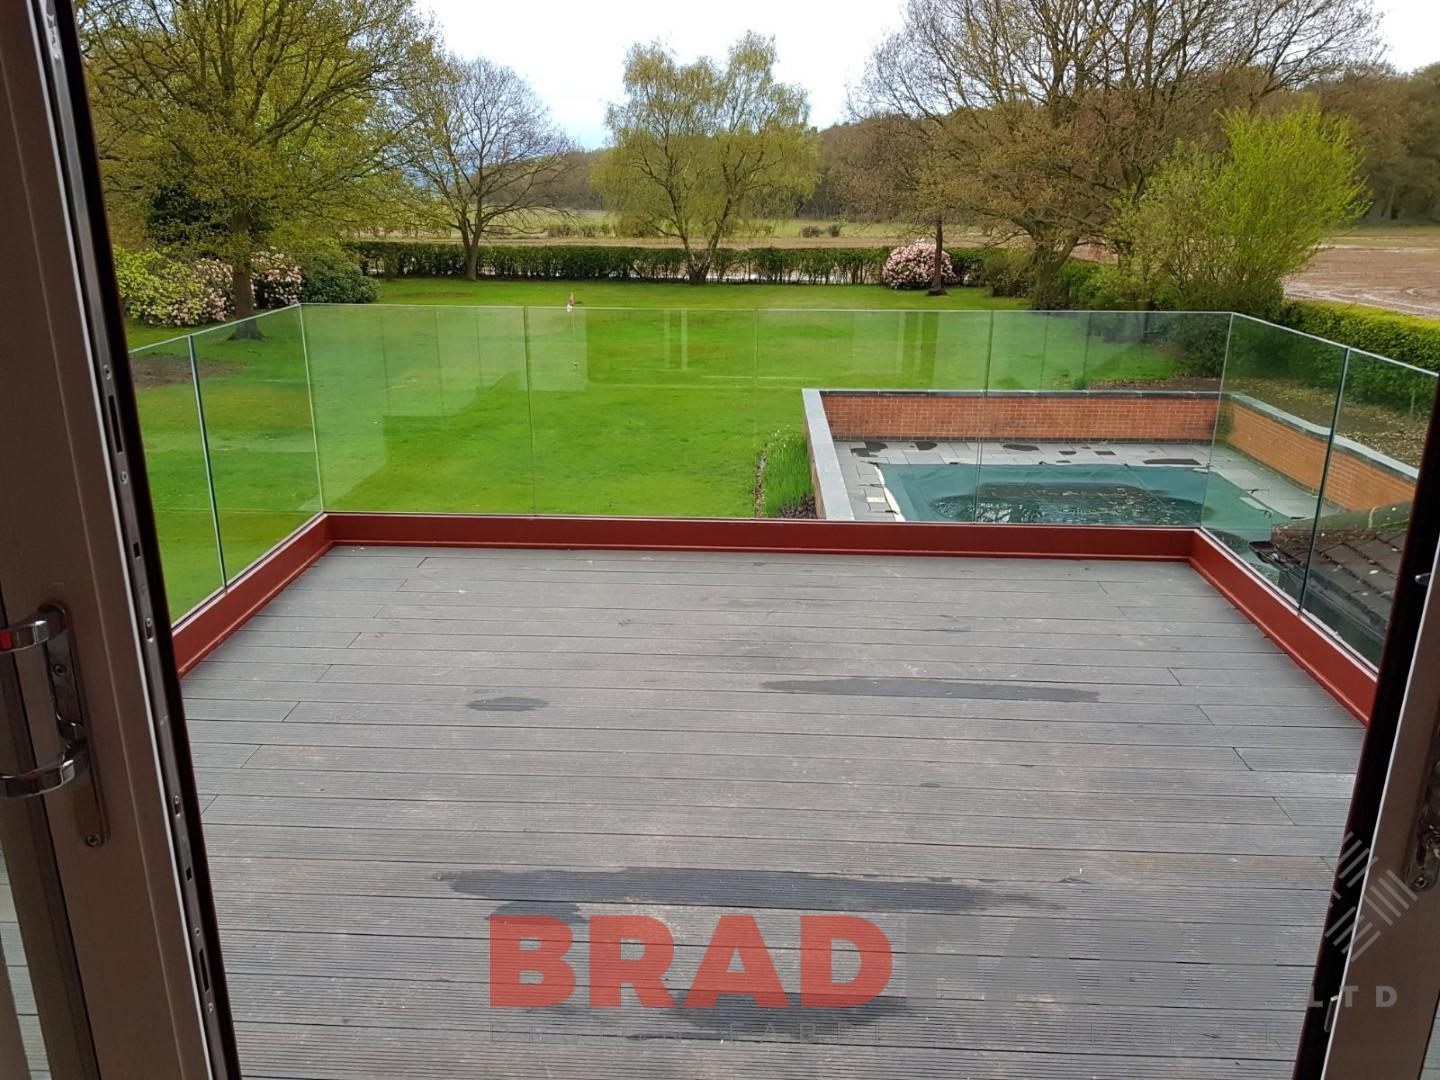 Infinity glass channel system by Bradfabs UK based company